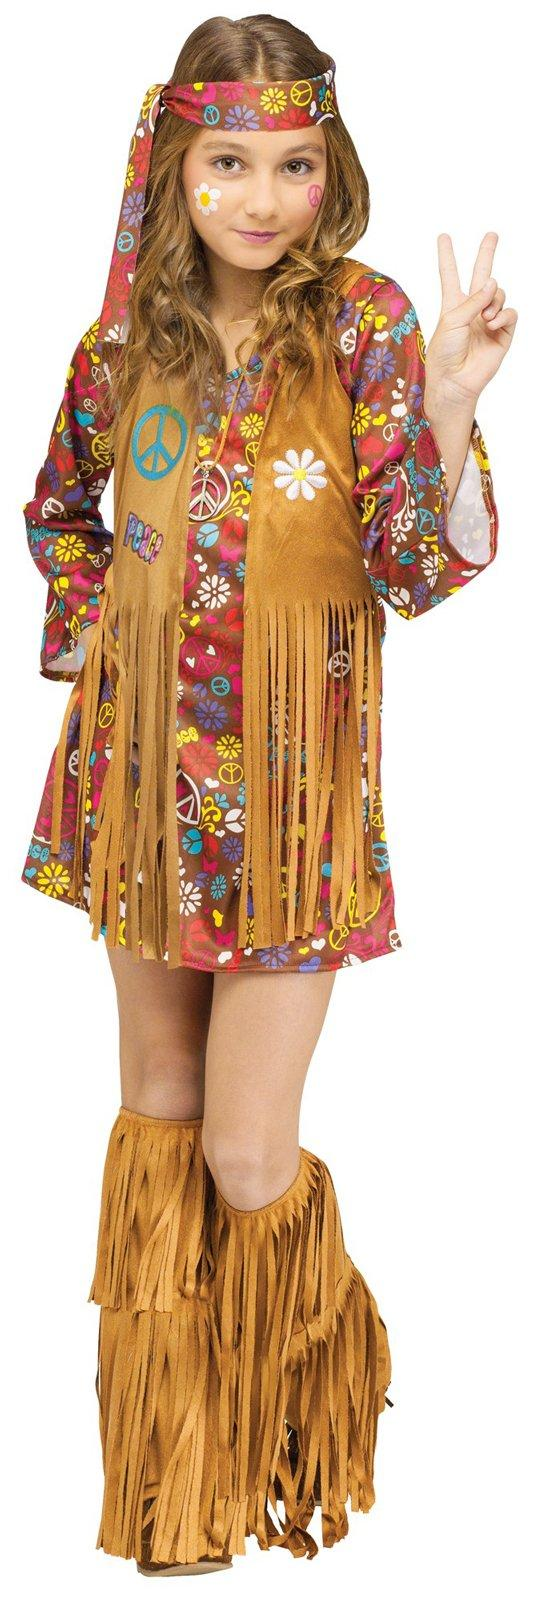 Peace and Love Hippie Costume For Kids  sc 1 st  Pinterest & Peace and Love Hippie Costume For Kids | Costume Ideas for Kids and ...